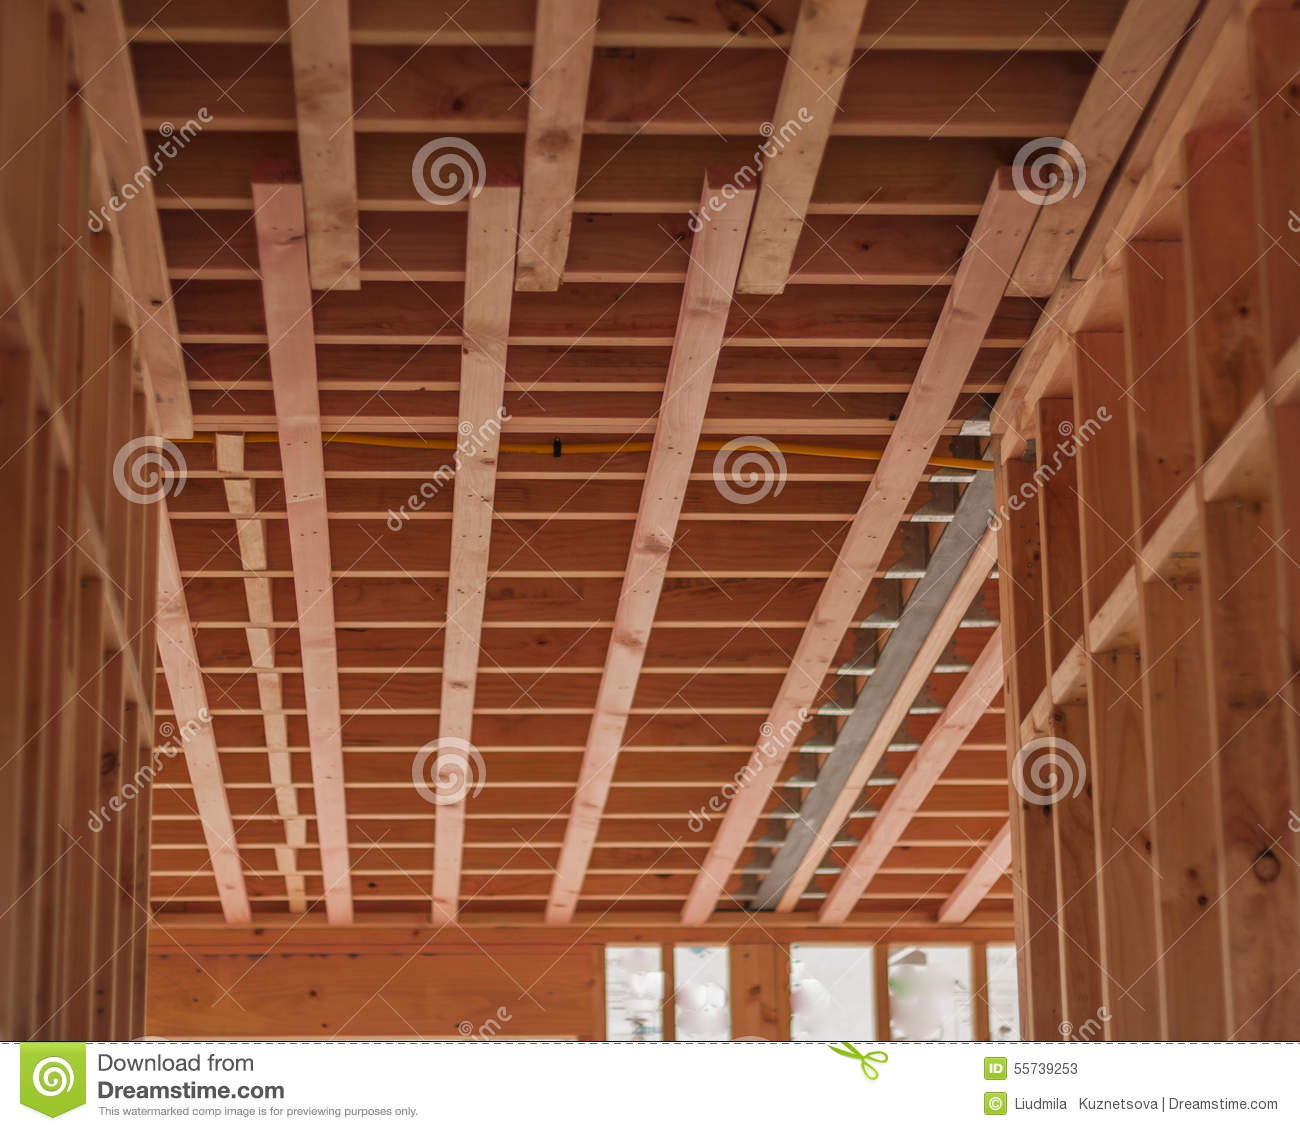 them swiss housing english ceilings s what above wooden general switzerland ceiling forum